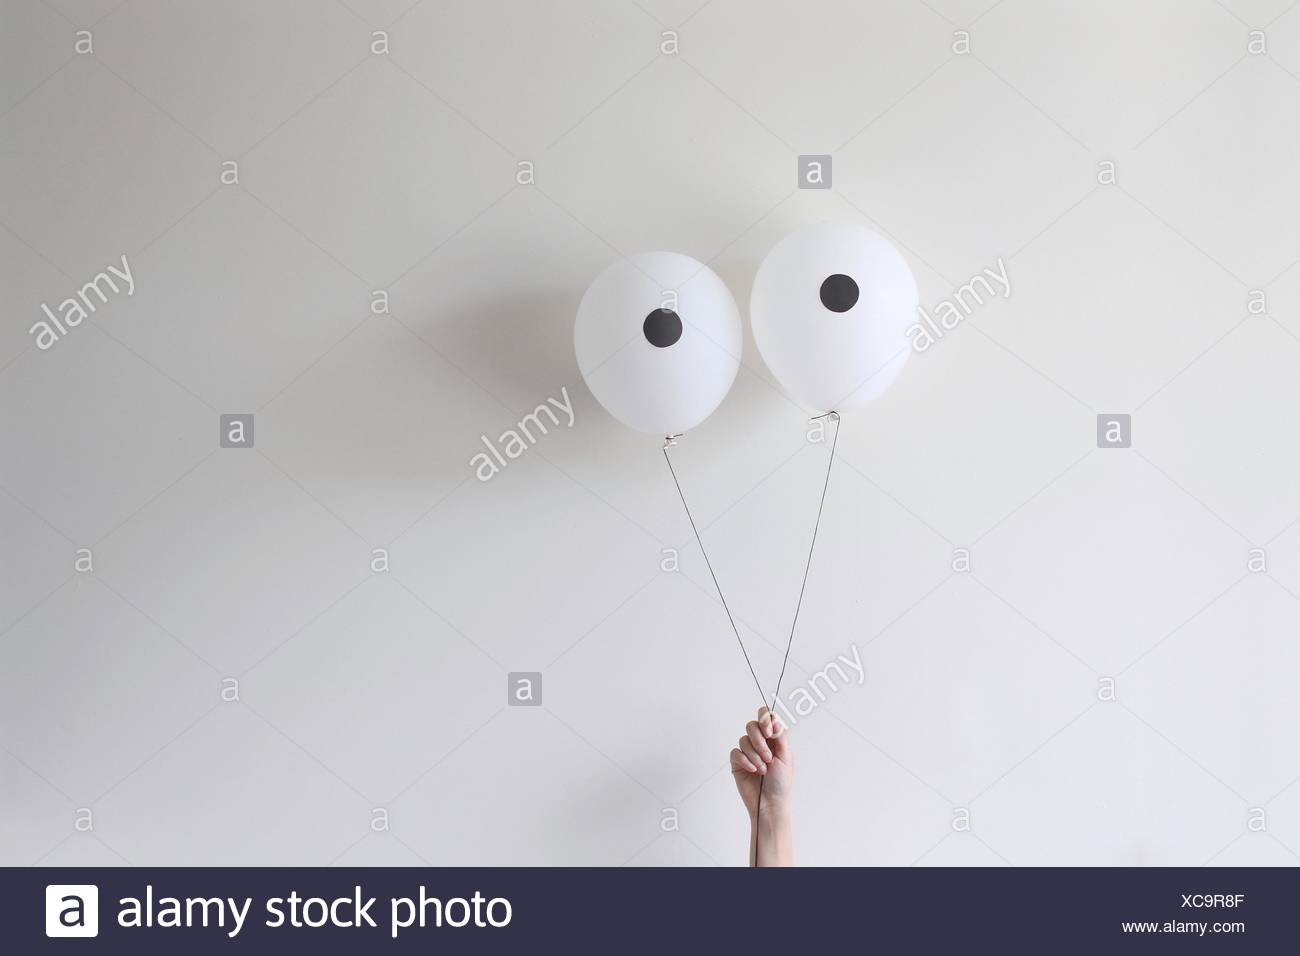 A hand holding a pair of balloons that look like eyes - Stock Image